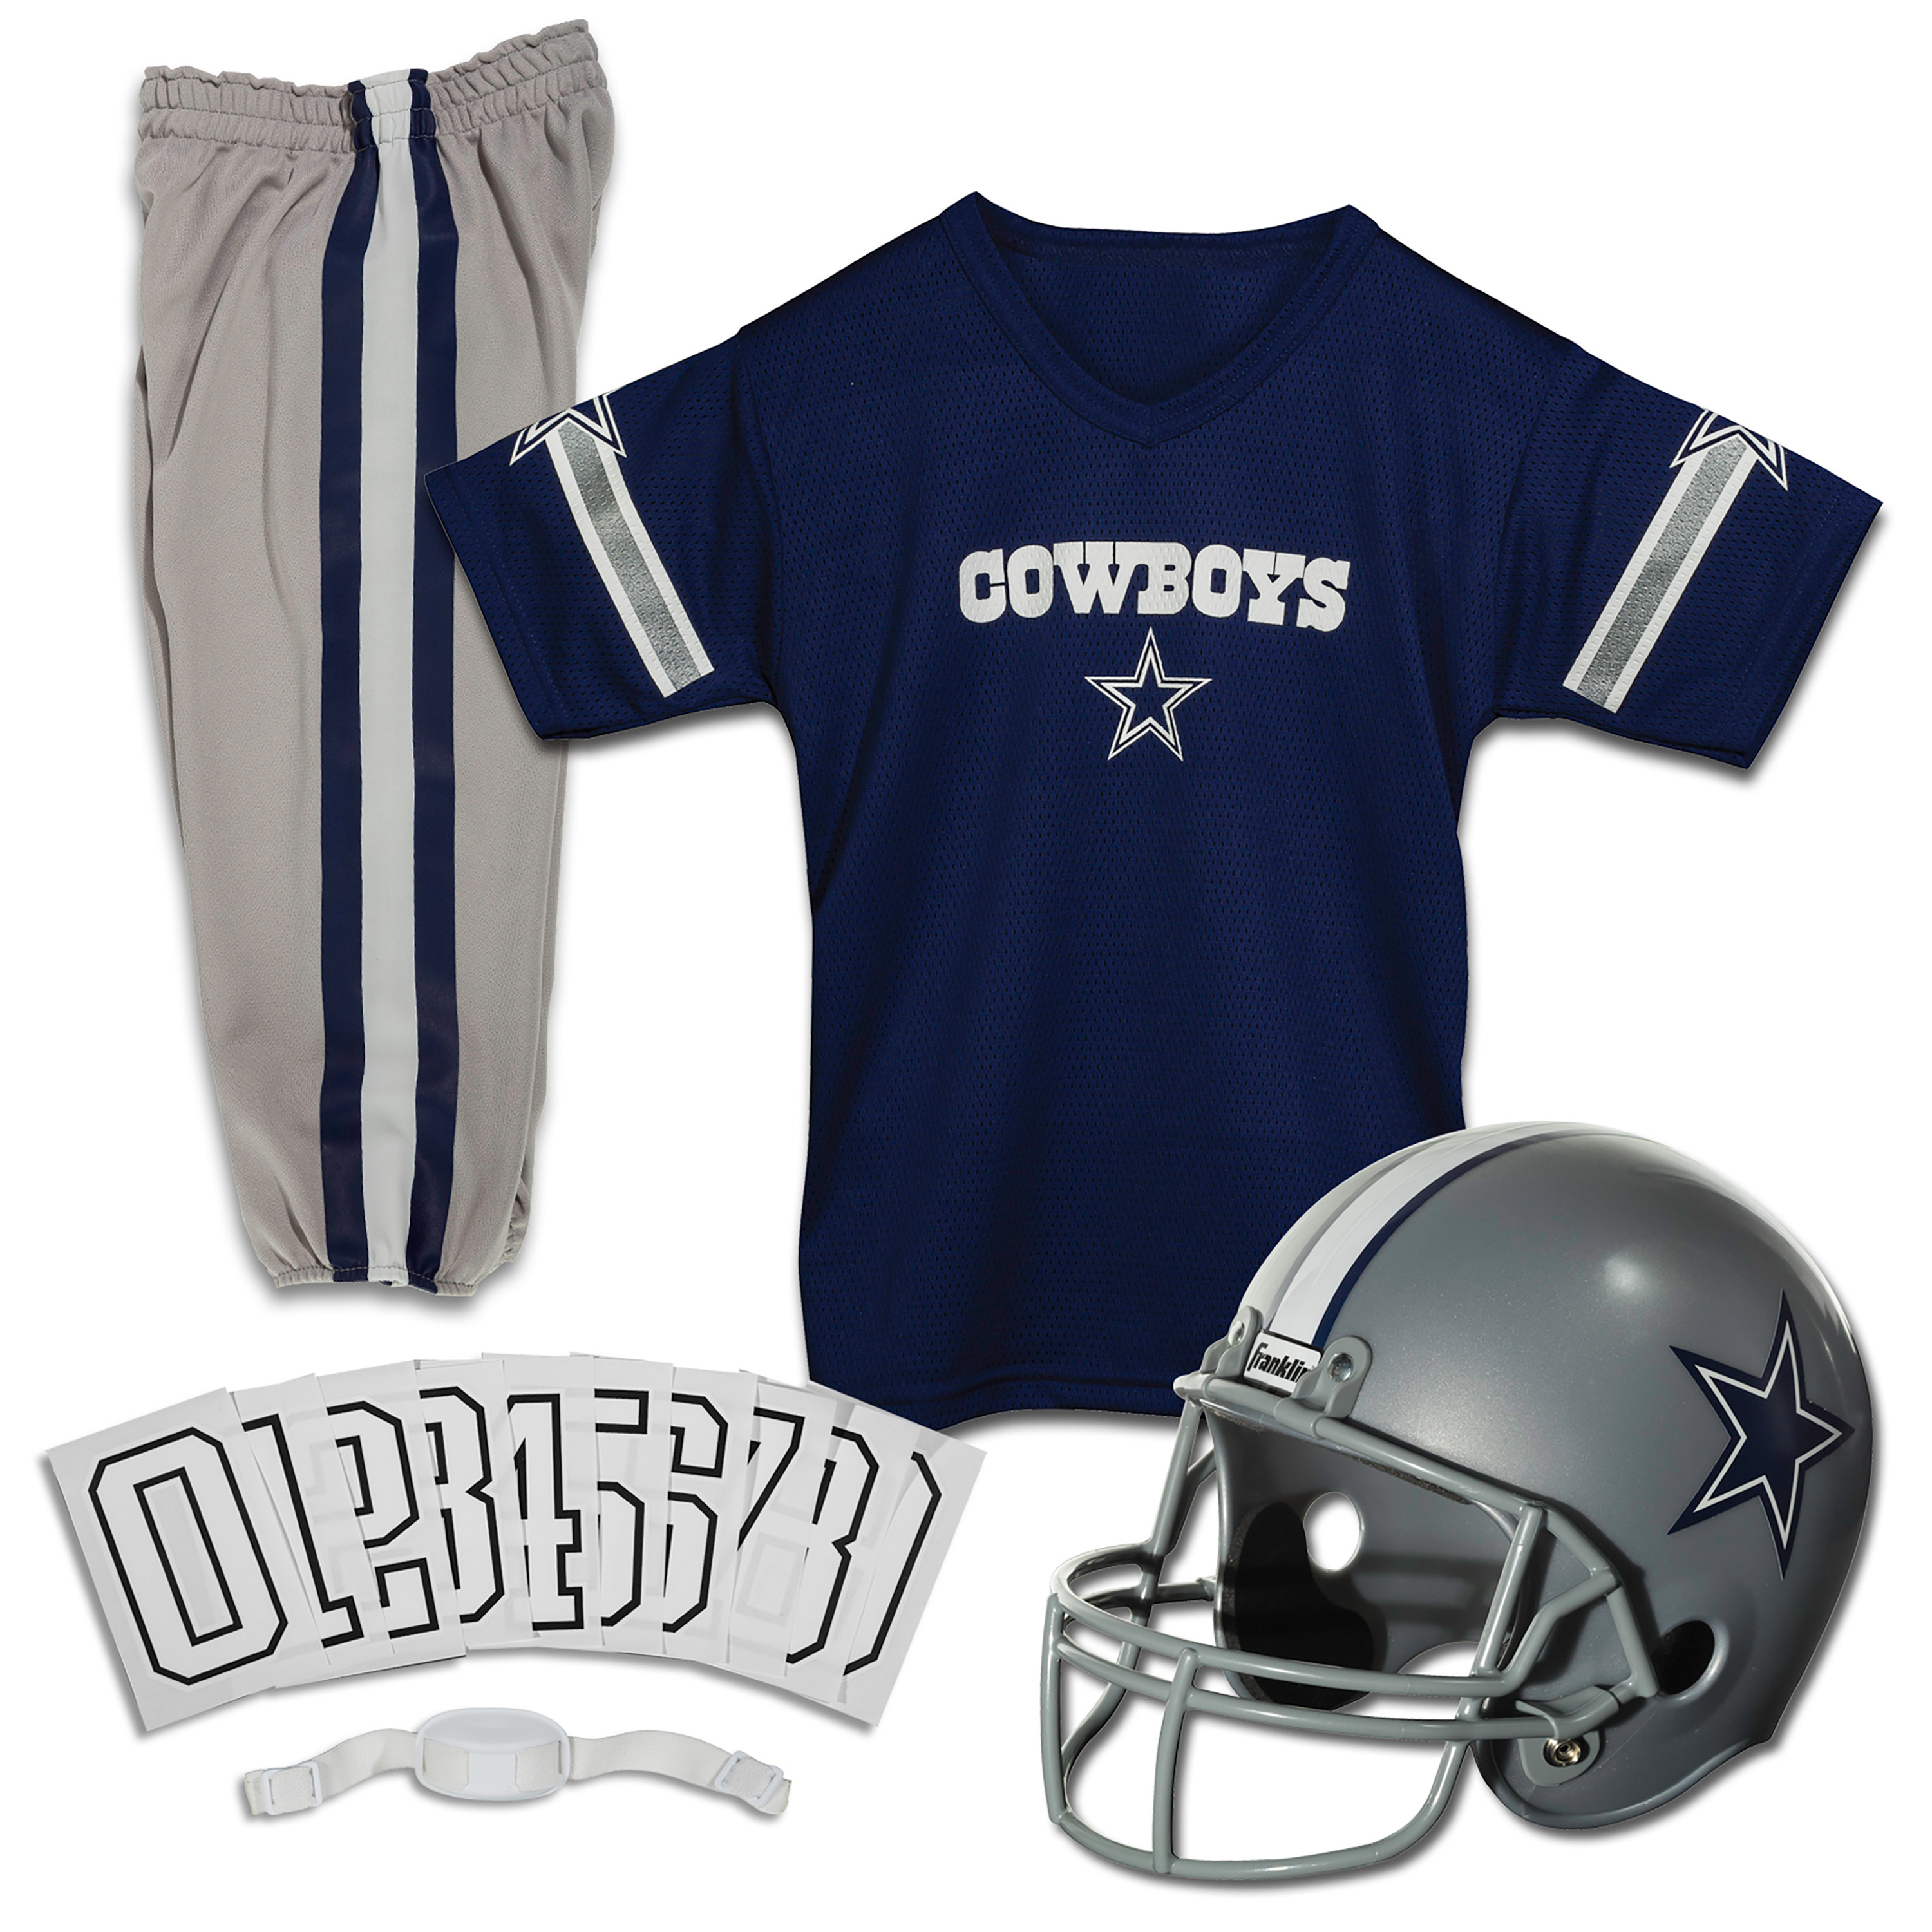 Details about Dallas Cowboys Uniform Set Youth NFL Football Jersey Helmet Kids Costume Small